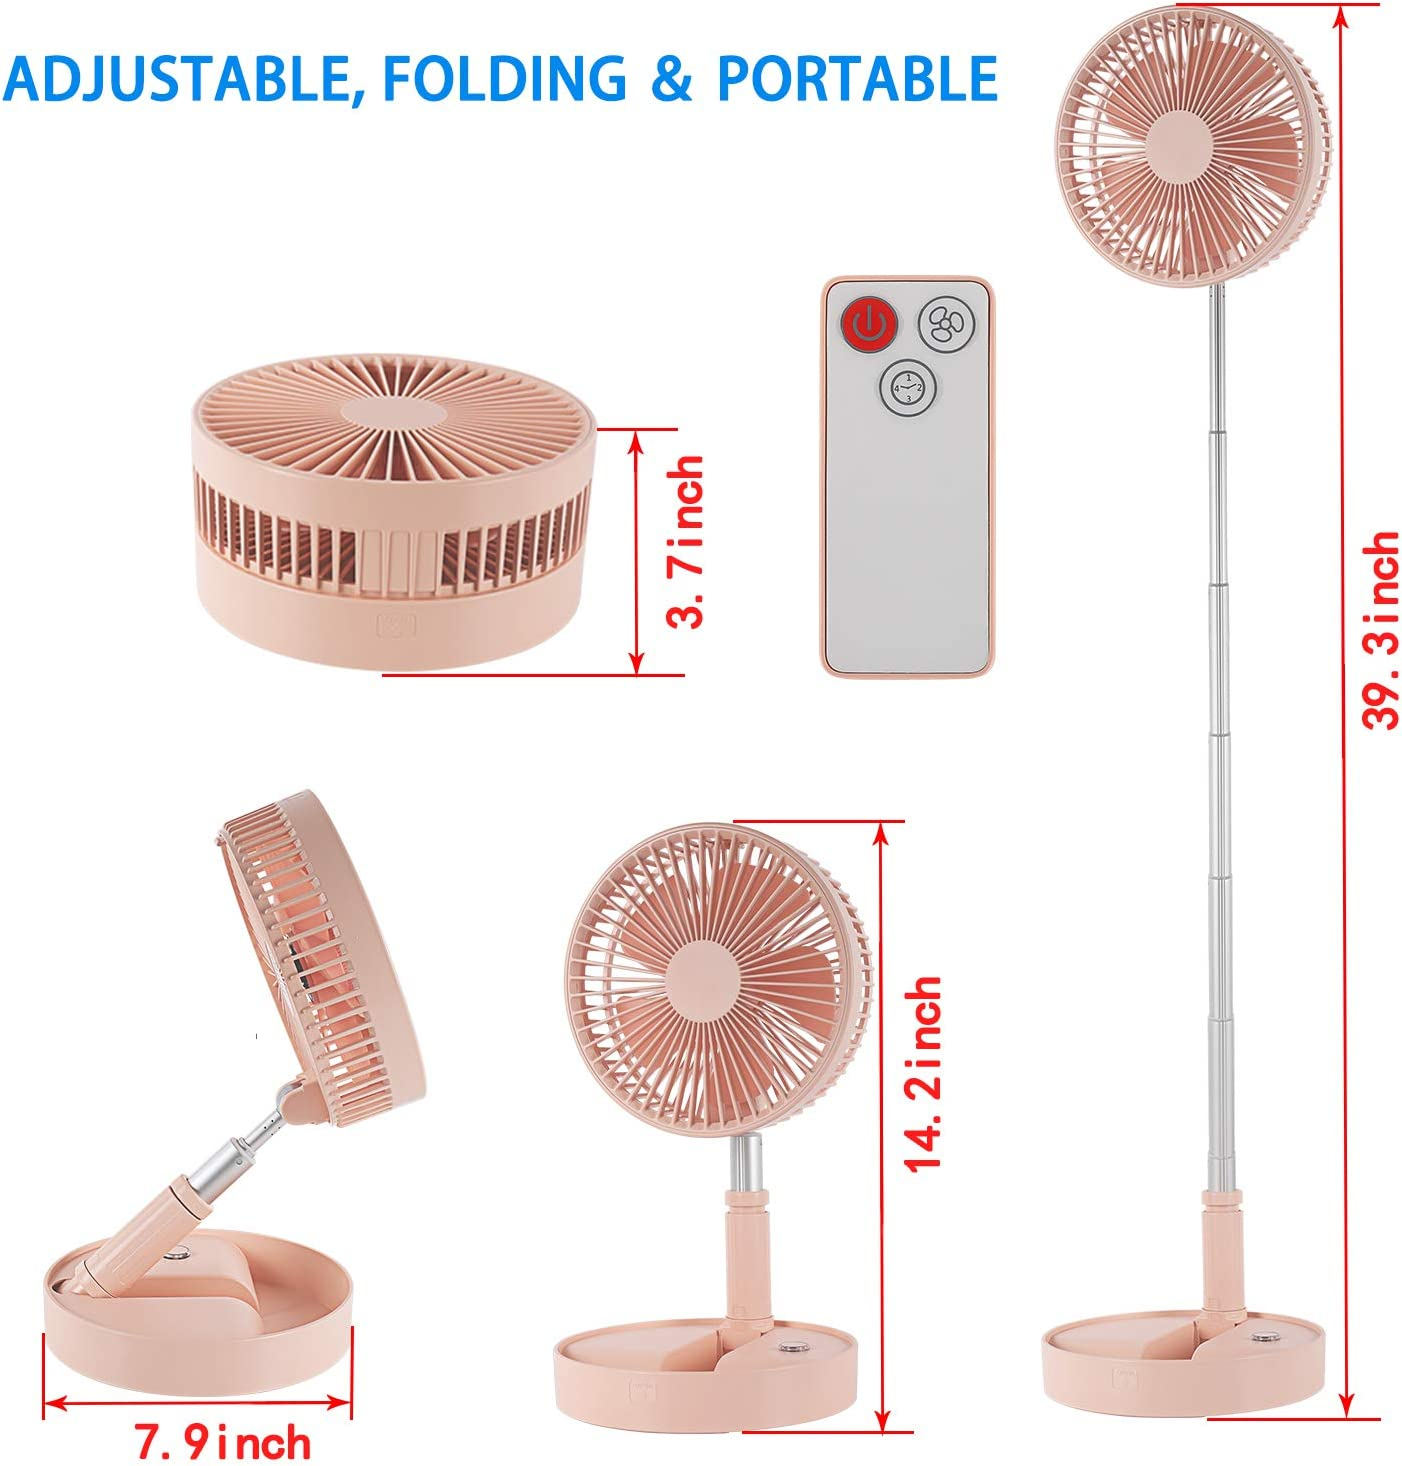 Lh$yu Portable Fan USB Rechargeable Fan Two Speed Adjustment of 360/° Rotating Wind Suitable for Office Homes to Carry Out,A